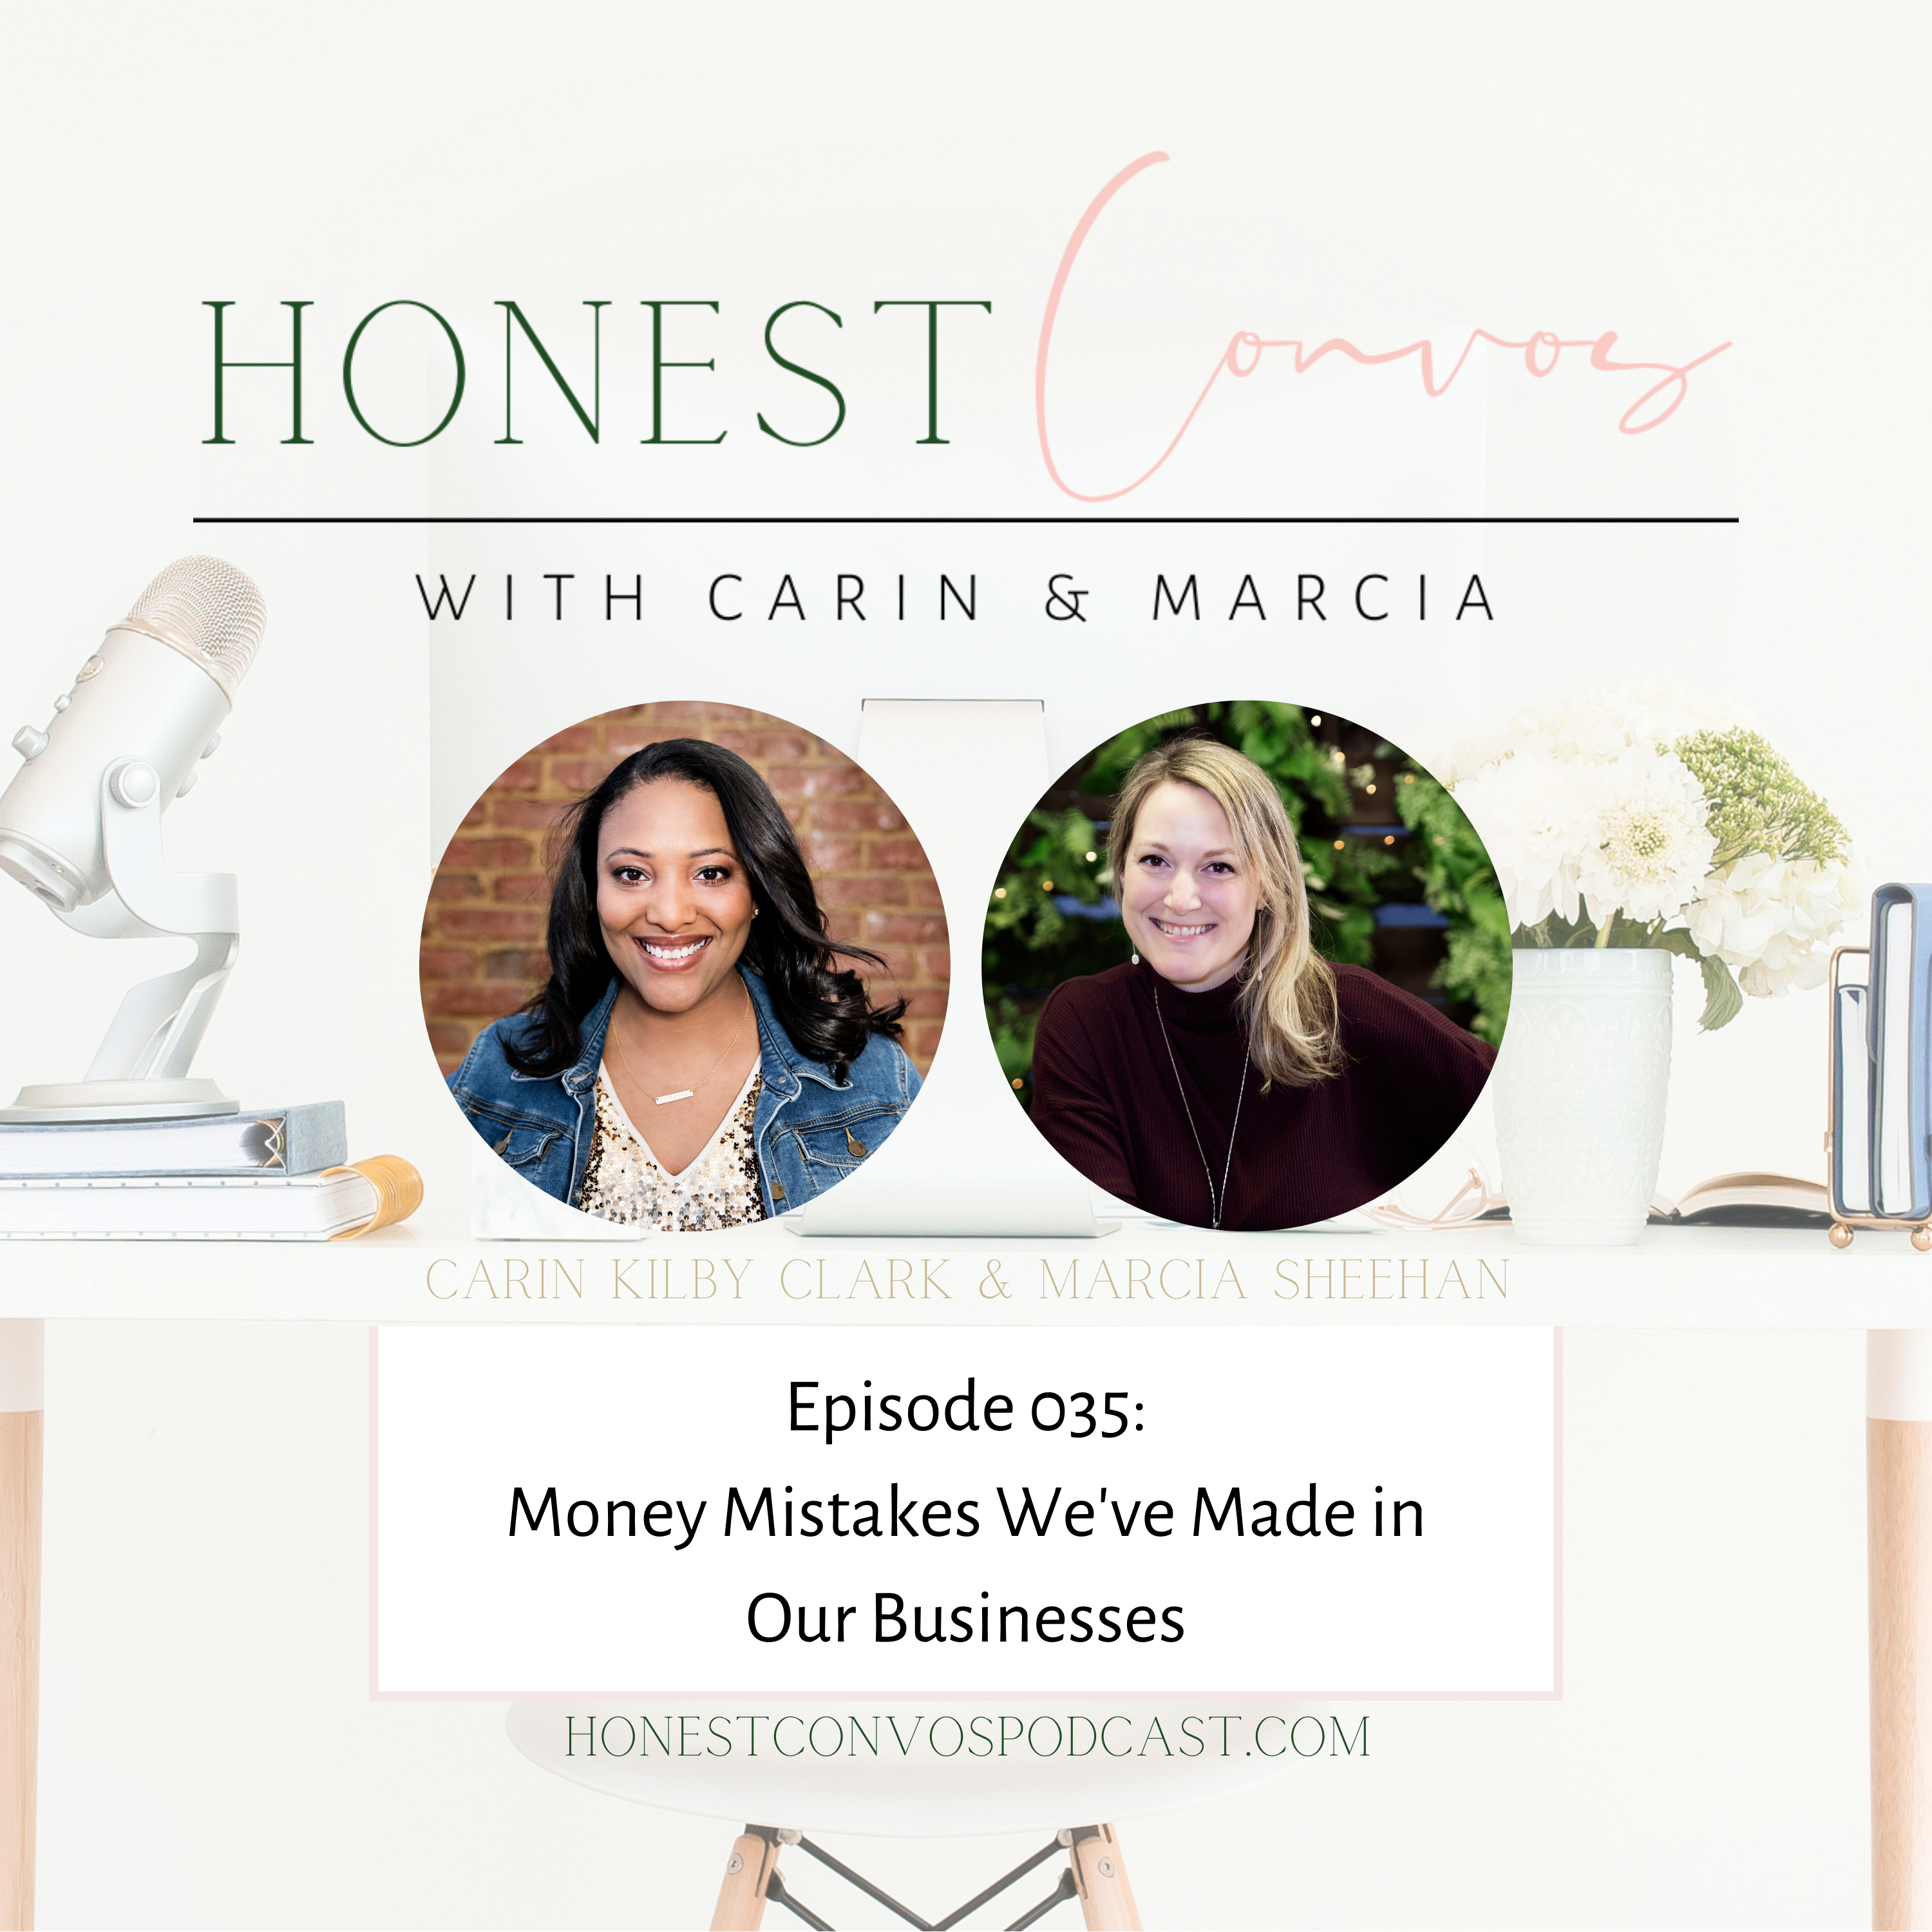 Money Mistakes We've Made in Our Businesses